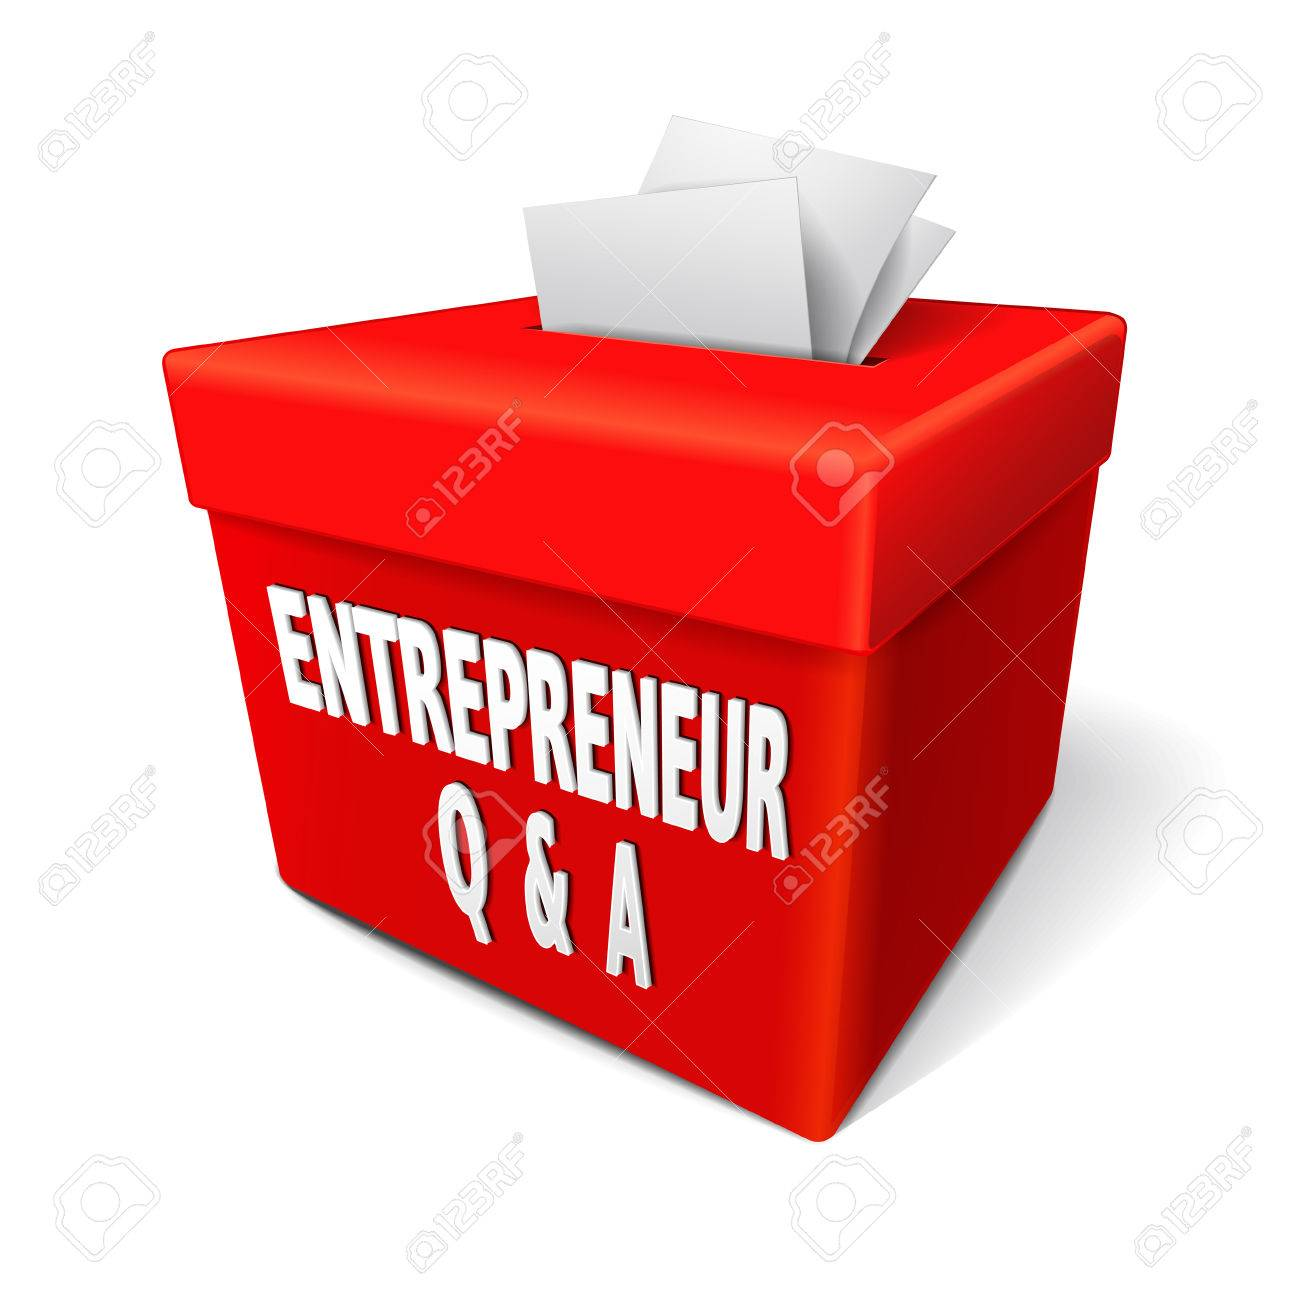 entrepreneur questions and answers words on the red box to get vector entrepreneur questions and answers words on the red box to get information help